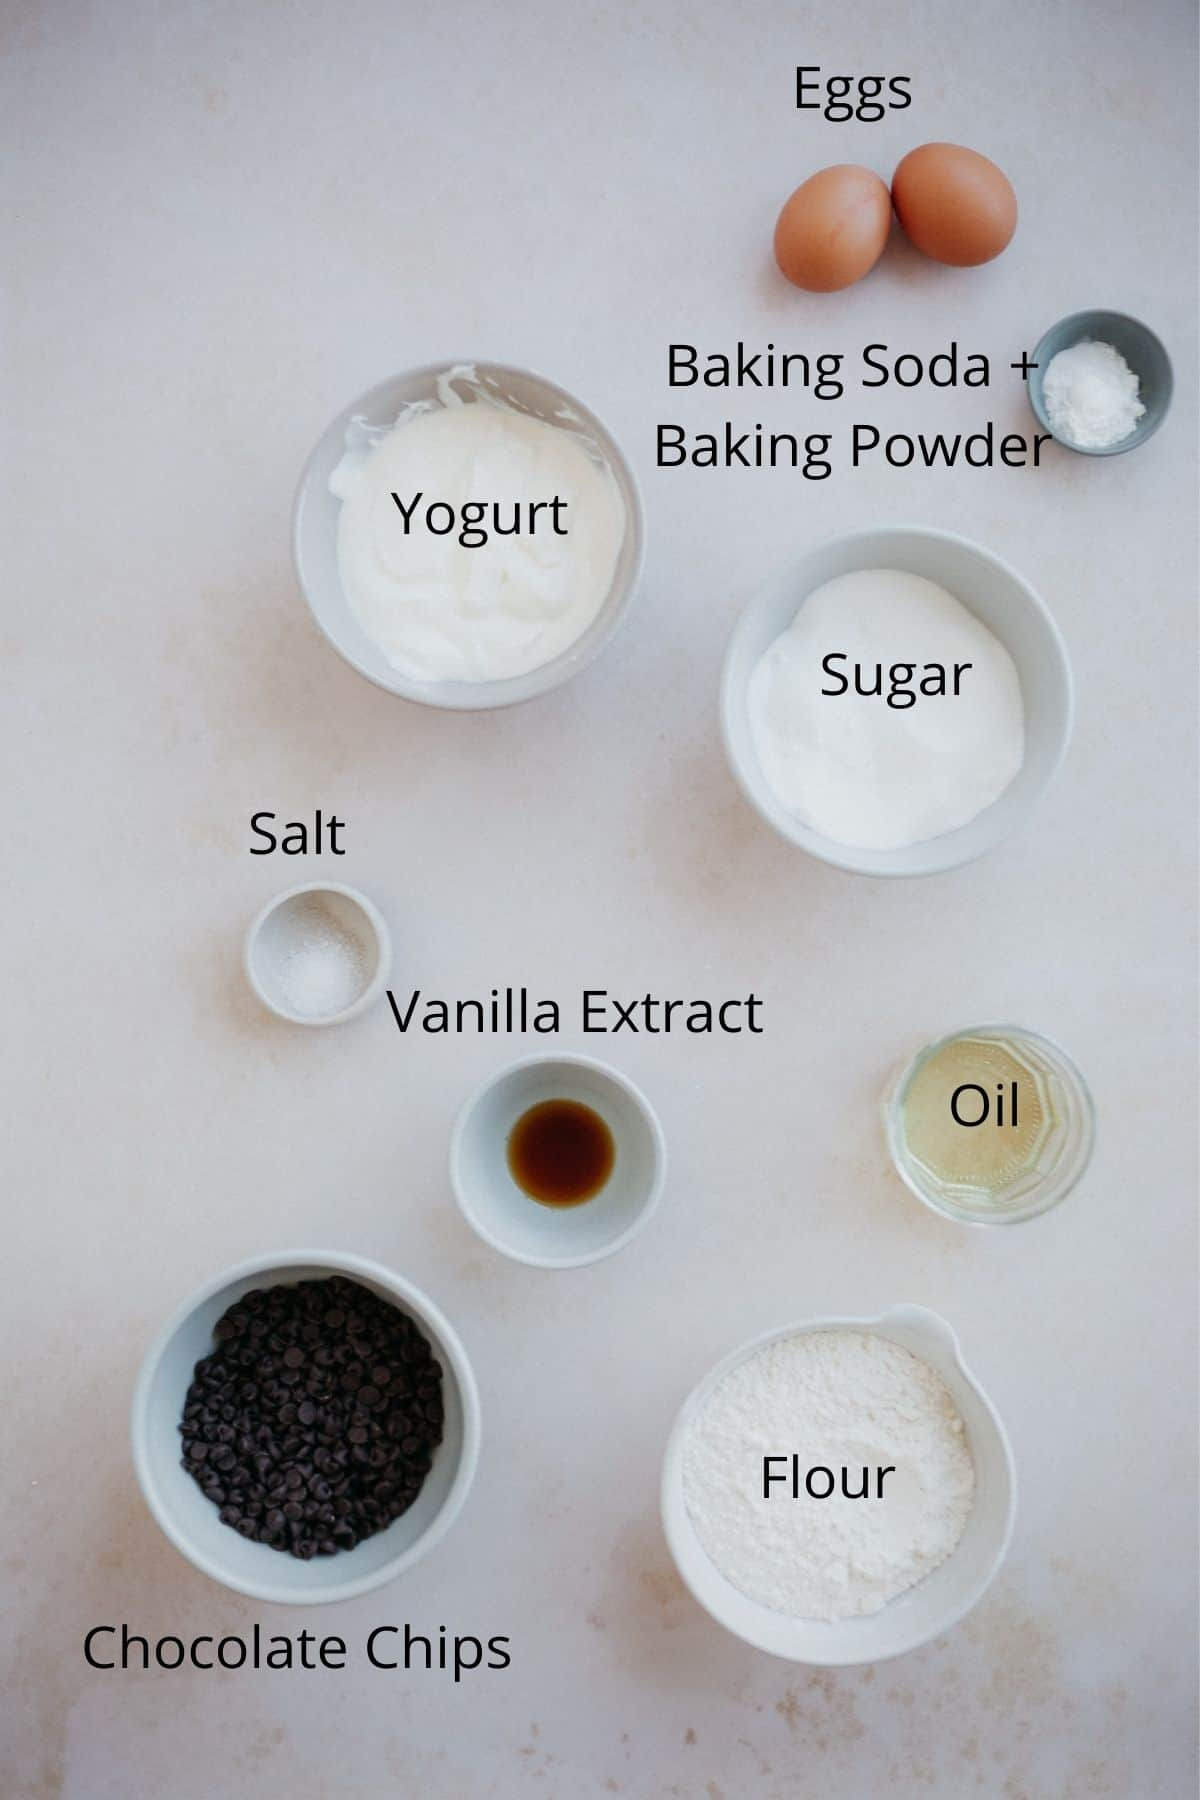 Ingredients needed for this loaf cake recipe